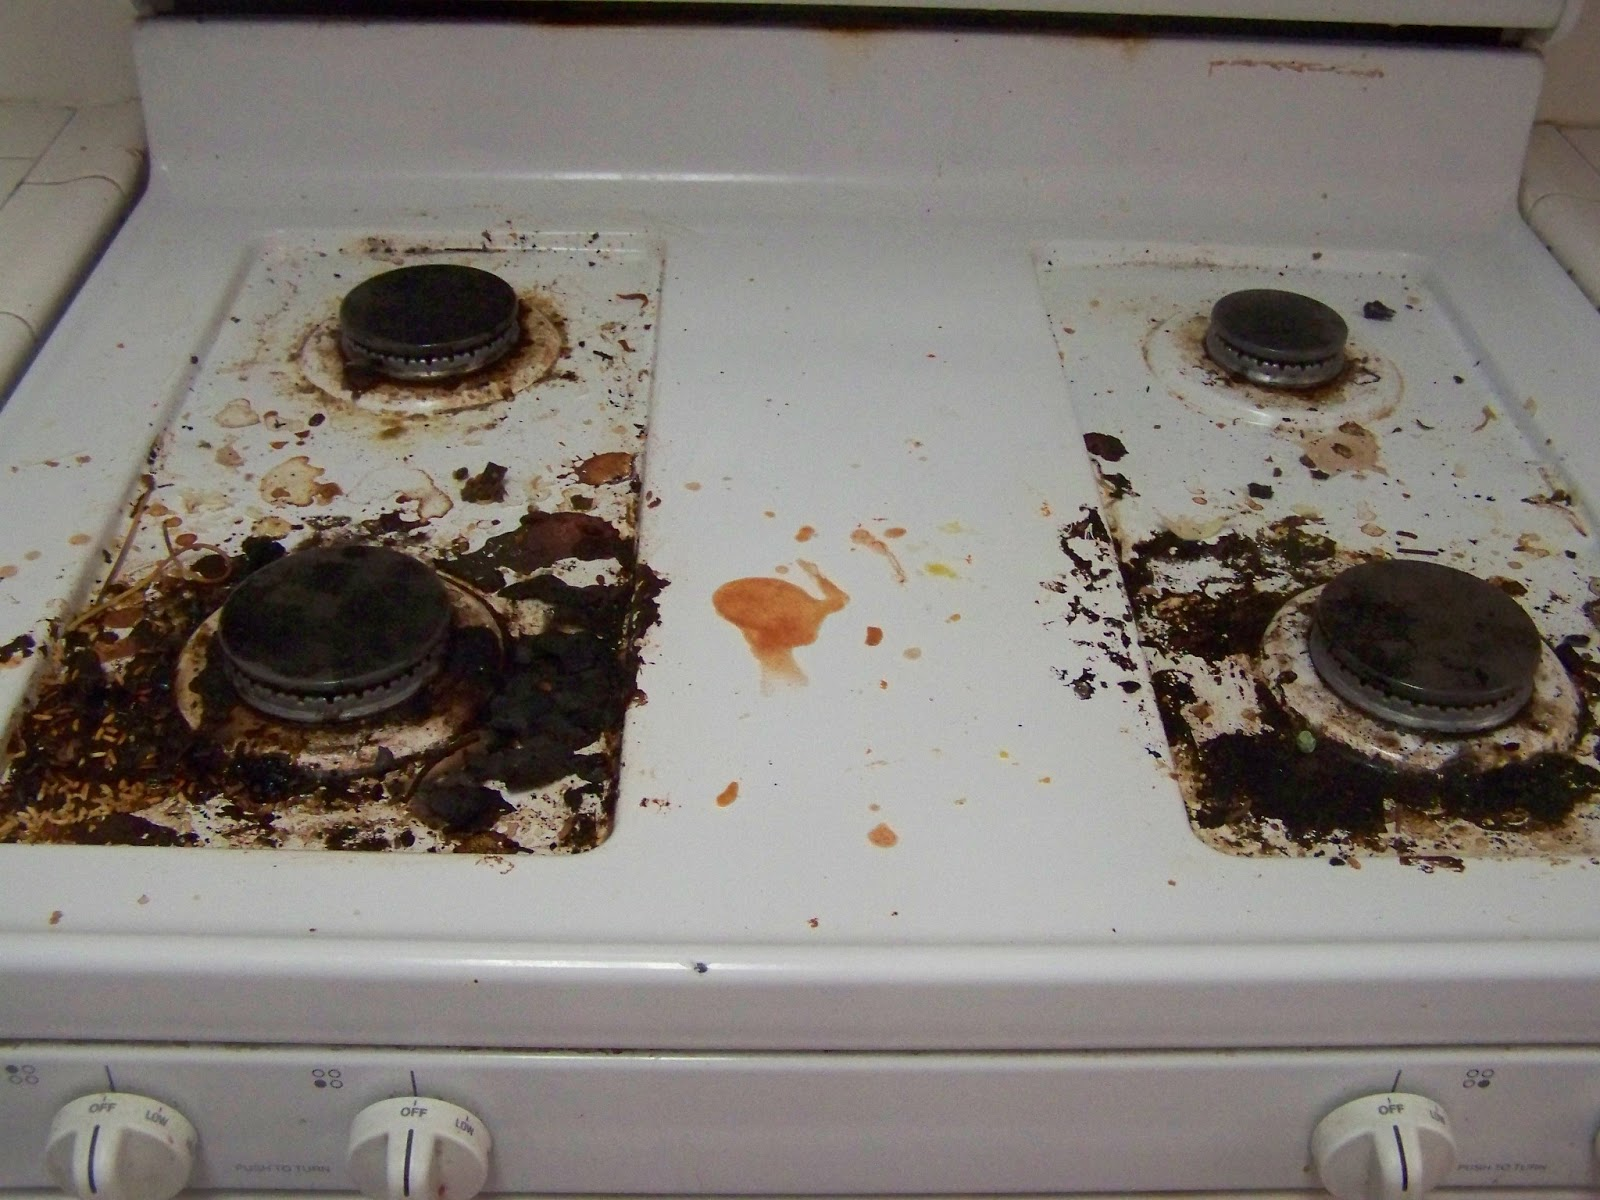 This Week S Pinterest Experiment Is The Stove Top Cleaner My Has Been Pretty Bad Try As I May Can T Seem To Get It Clean